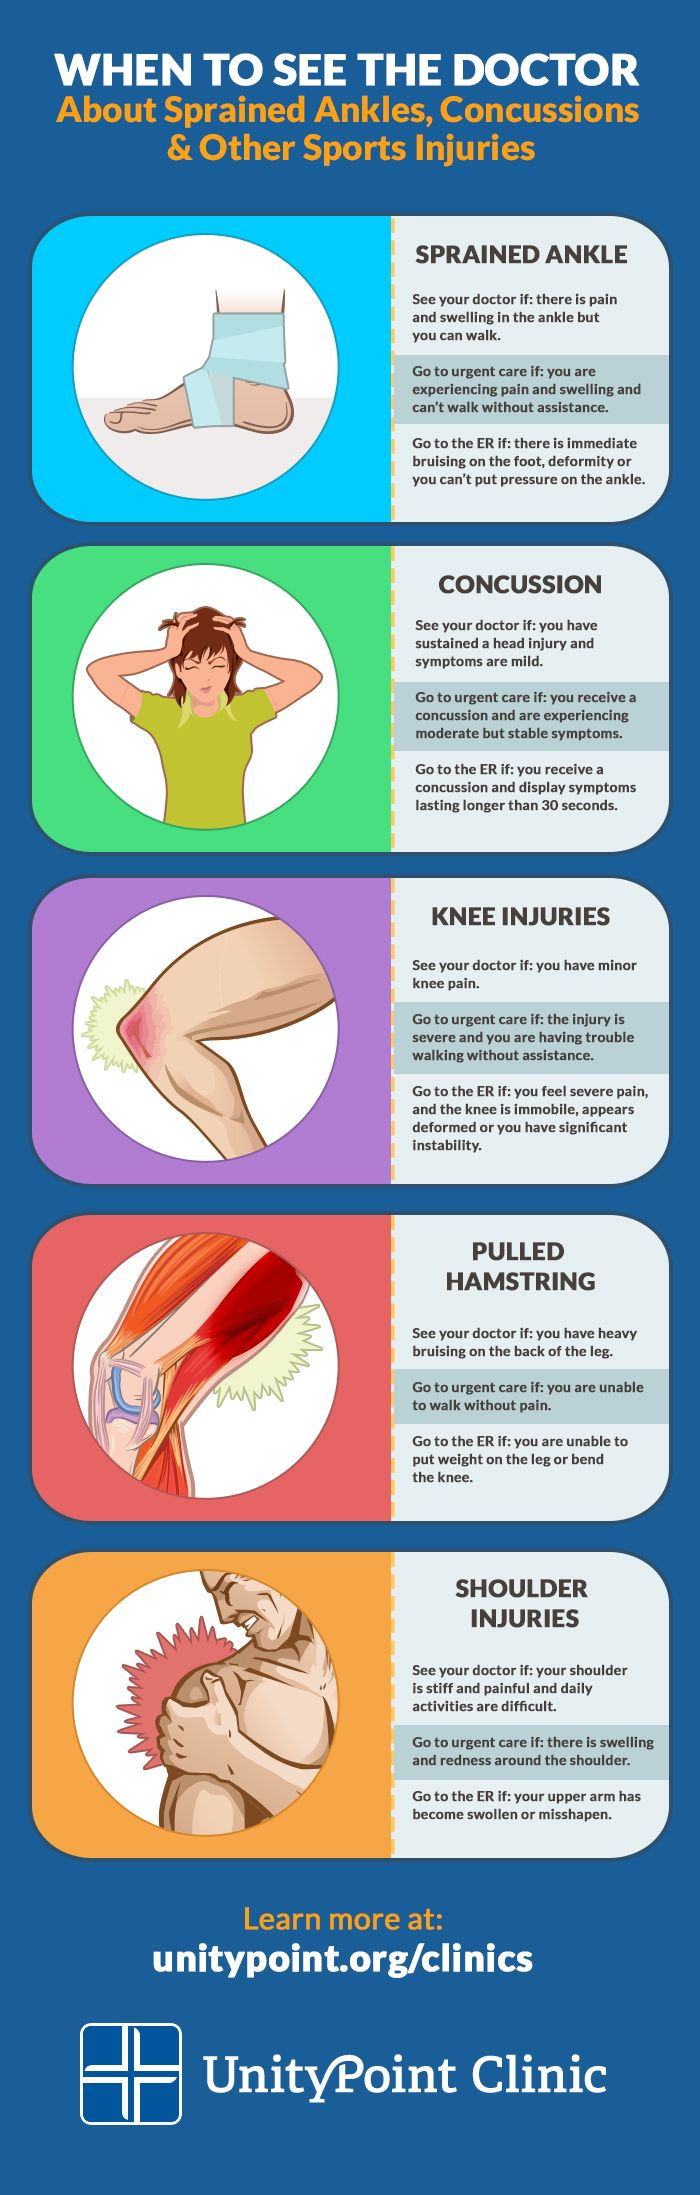 Sports injuries are common among athletes, but do you know when it's time to see a doctor for an injury?  UnityPoint Clinic breaks it down.